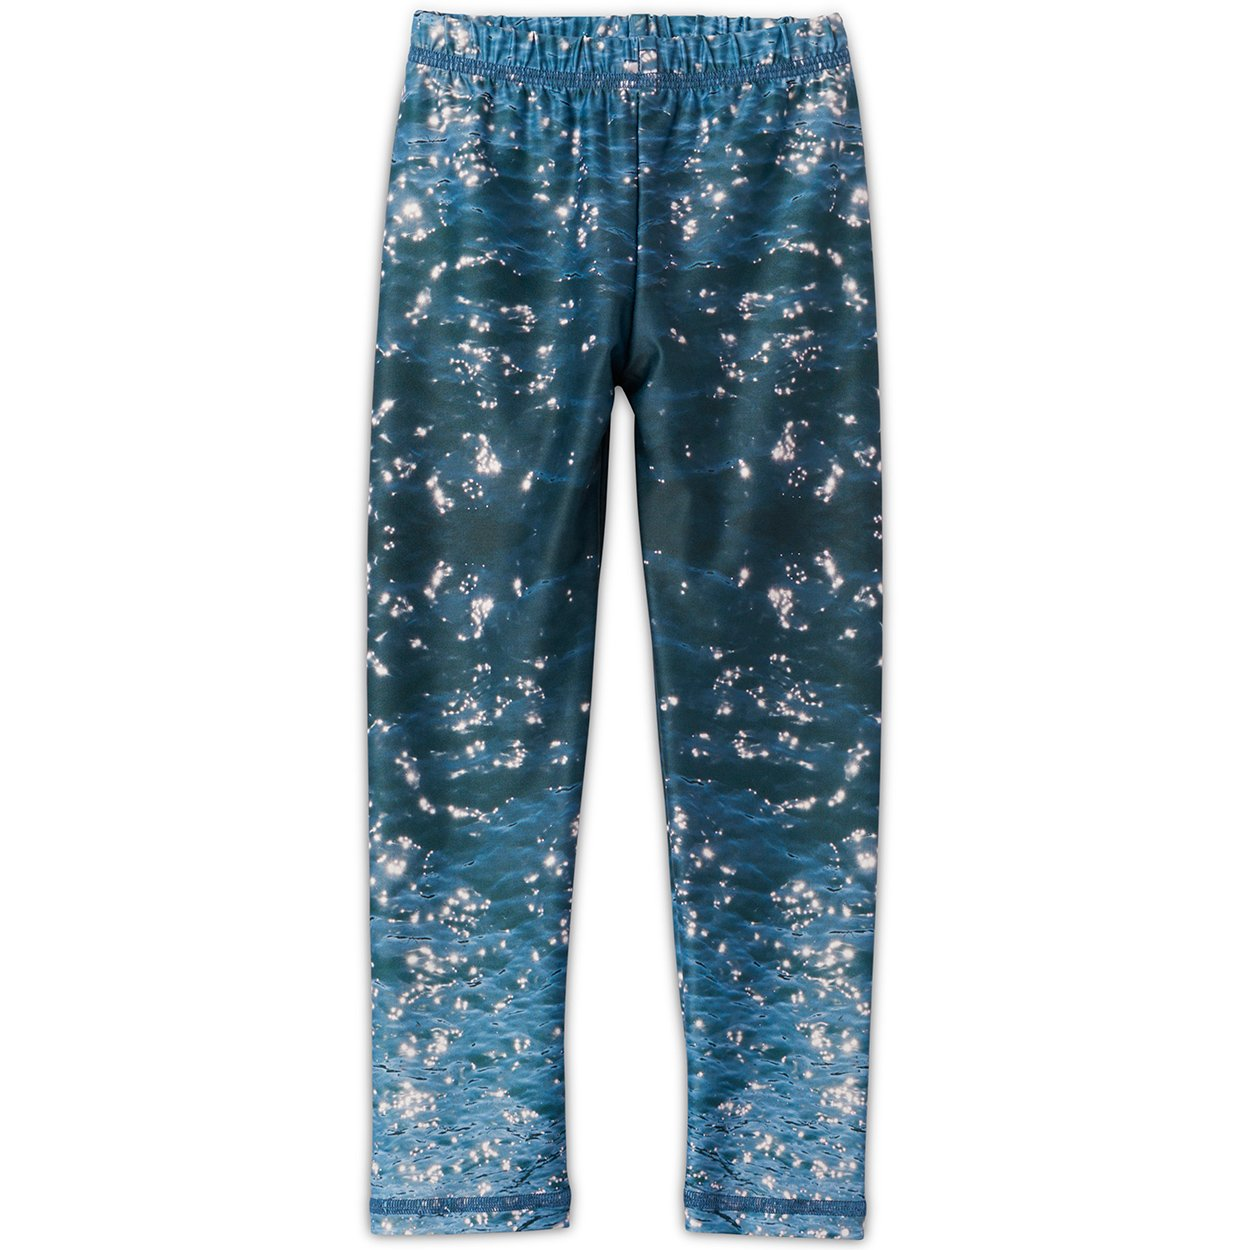 Ocean Photo Leggings UPF 50+